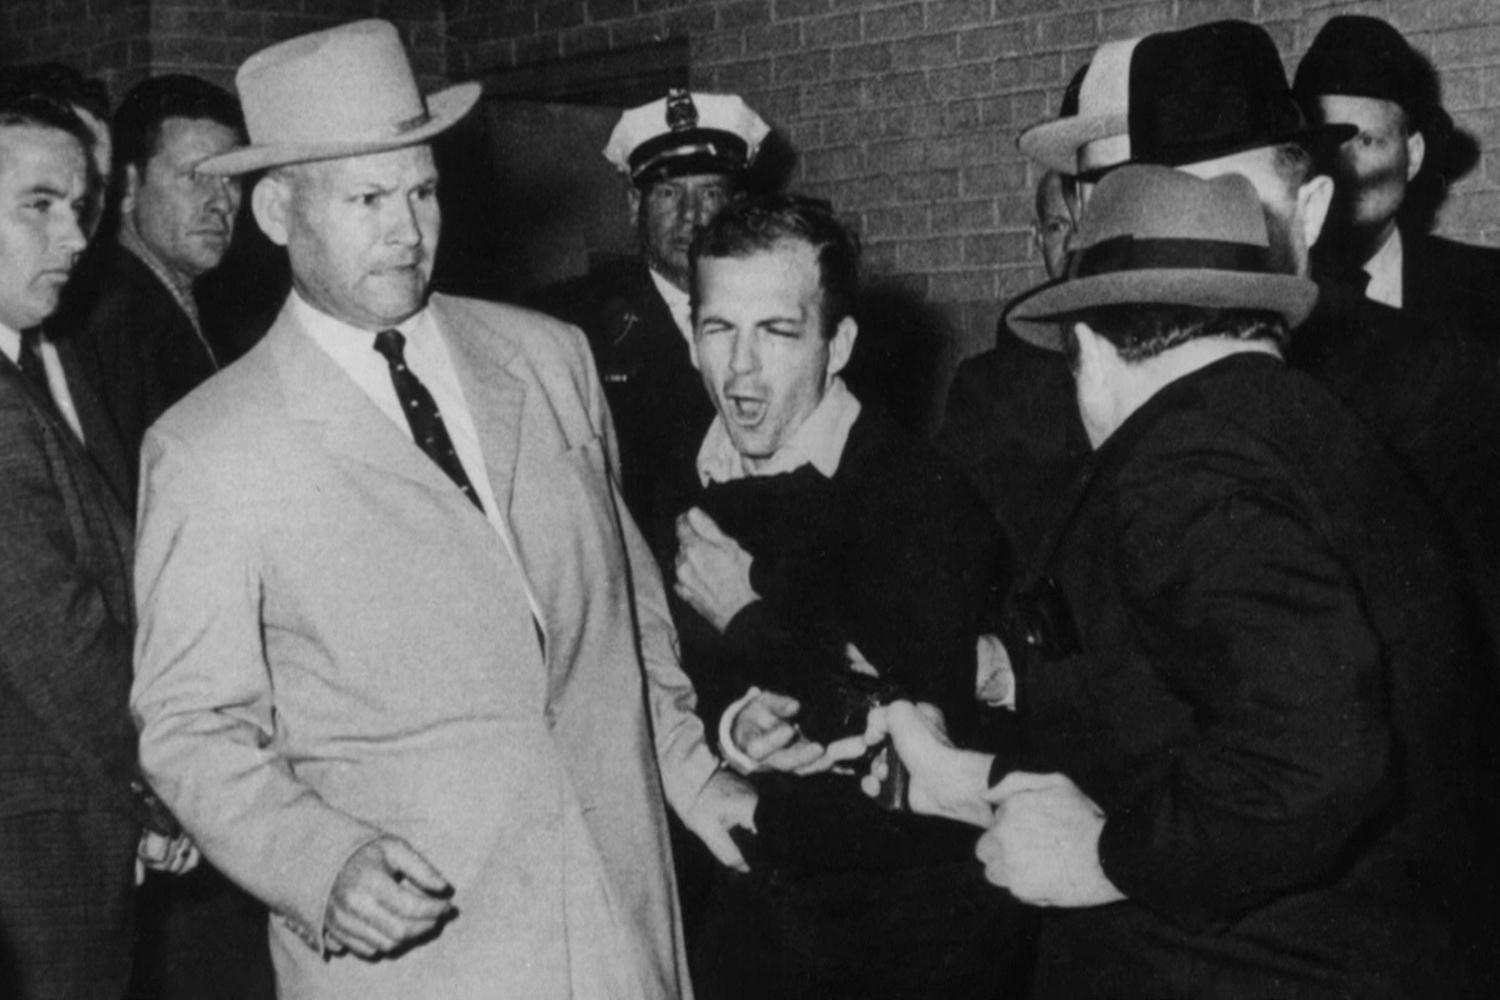 The legendary Dallas police detective, James Leavelle, who was handcuffed to JFK assassin Lee Harvey Oswald when he was shot by Jack Ruby, has been honored by the Dallas Police Department.